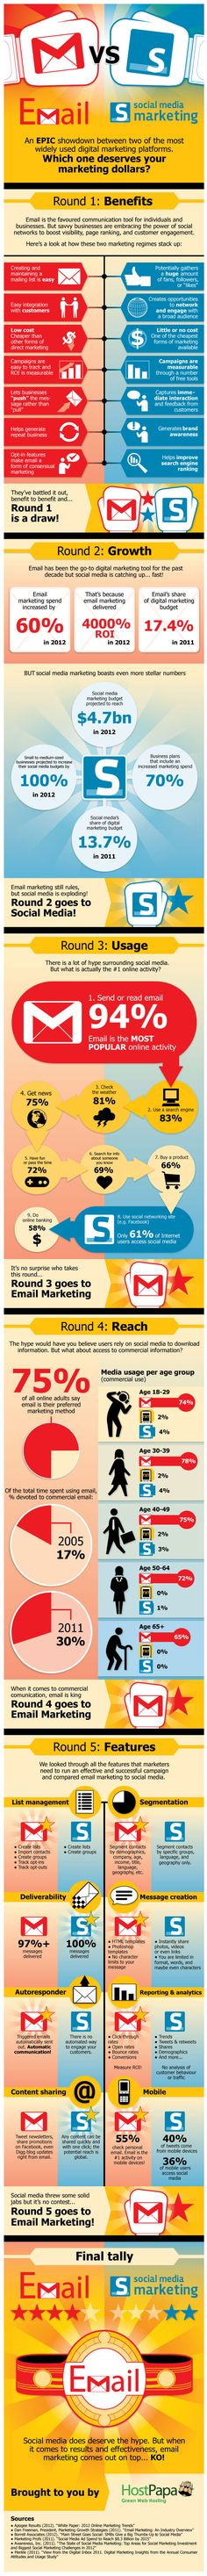 Sensational Tips To Make Email And Social Media Your Marketing Tag Team Champions [Plus Bonus Infographic]